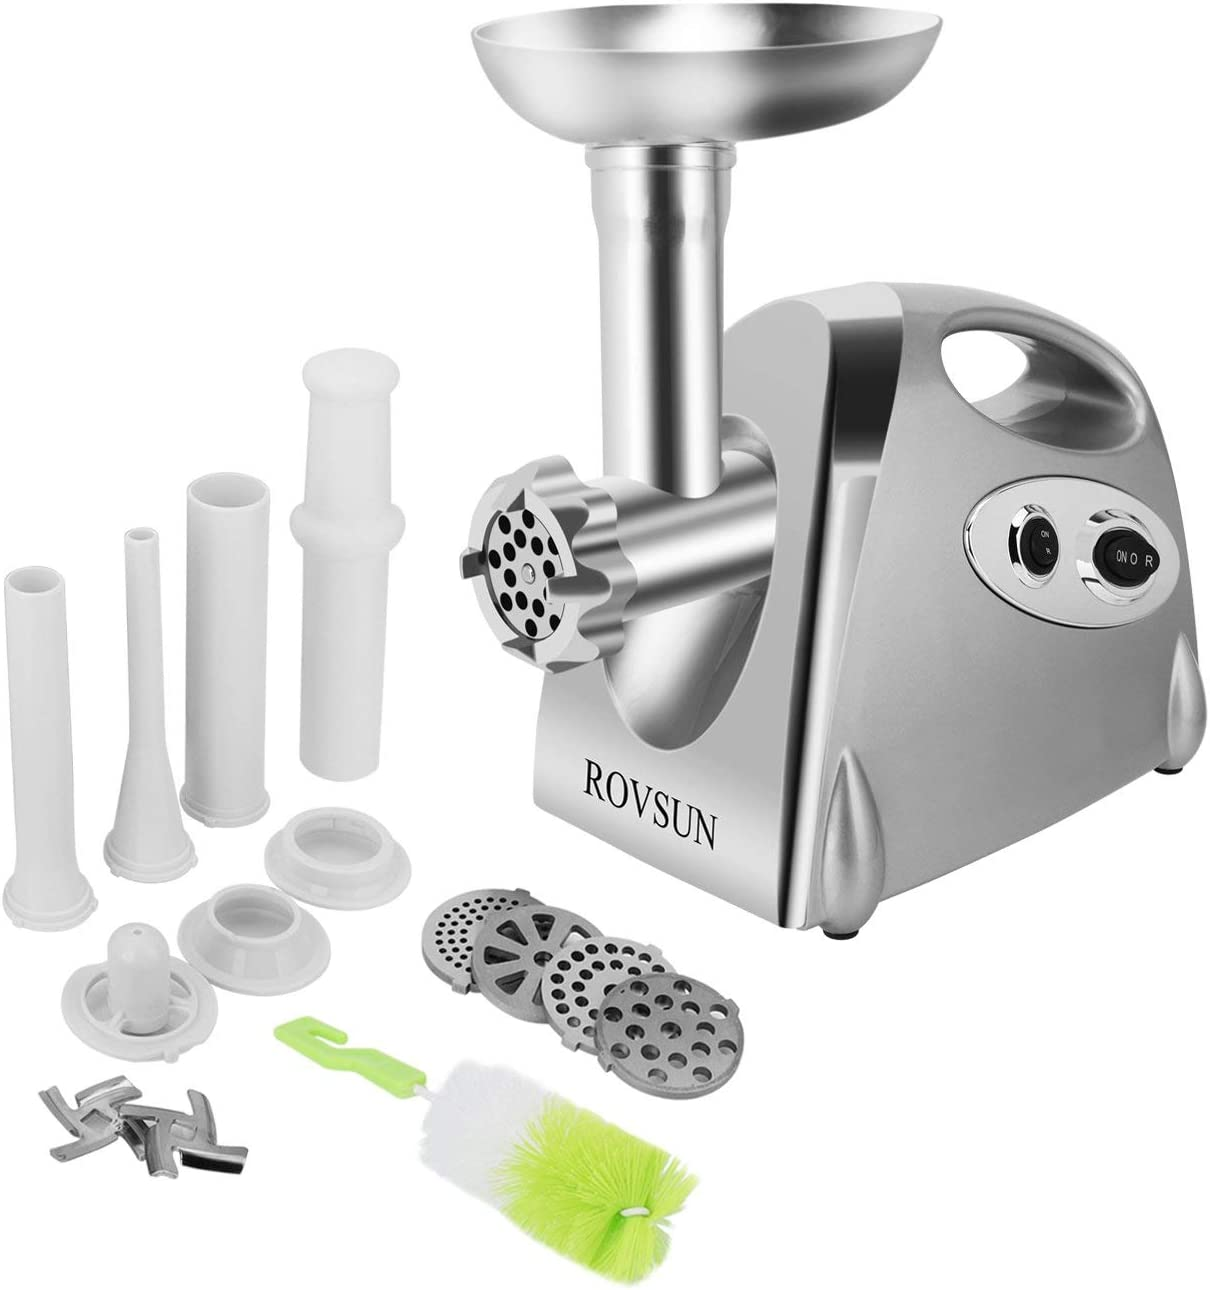 ROVSUN Electric Meat Grinder, 800W Heavy Duty Mincer Sausage Stuffer Food Processor with 4 Grinding Plates 3 Sausage Tubes 2 Stainless Steel Blades Kubbe Attachment & Brush, For Home Use, ETL Listed (Renewed)